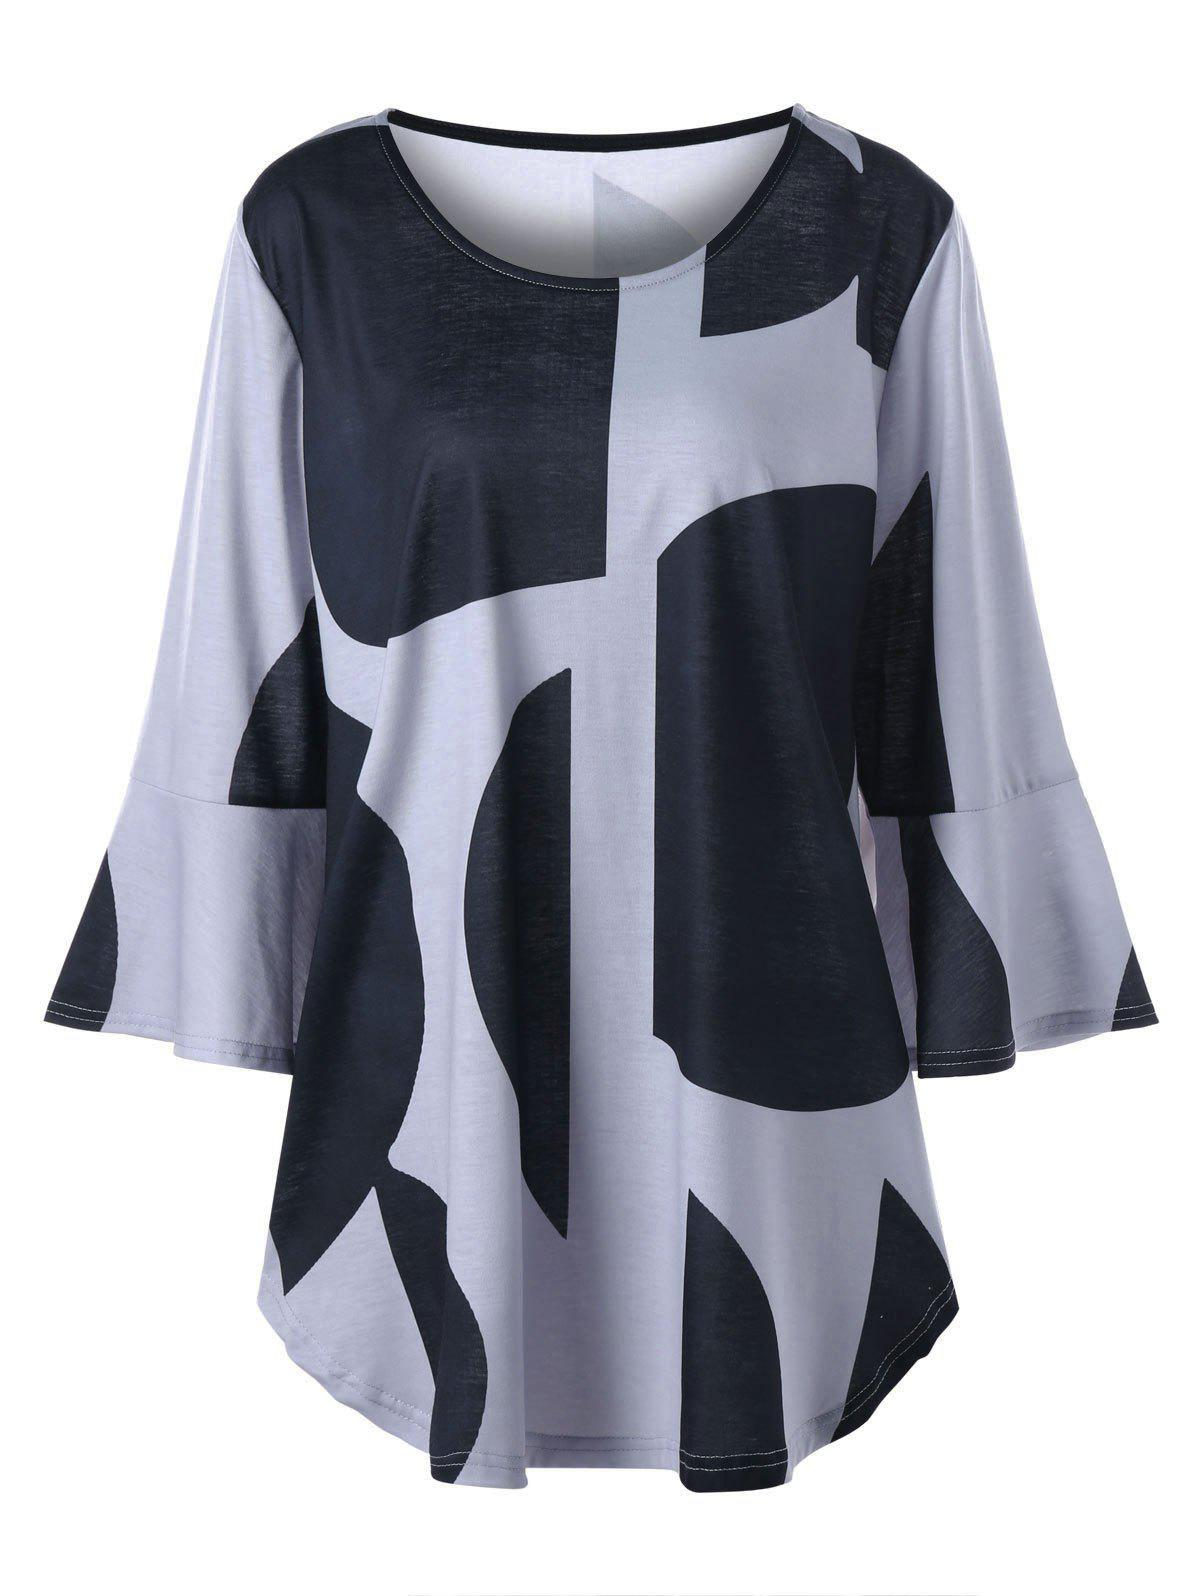 Plus Size Curved Flare Sleeve Top - BLACK/GREY 2XL